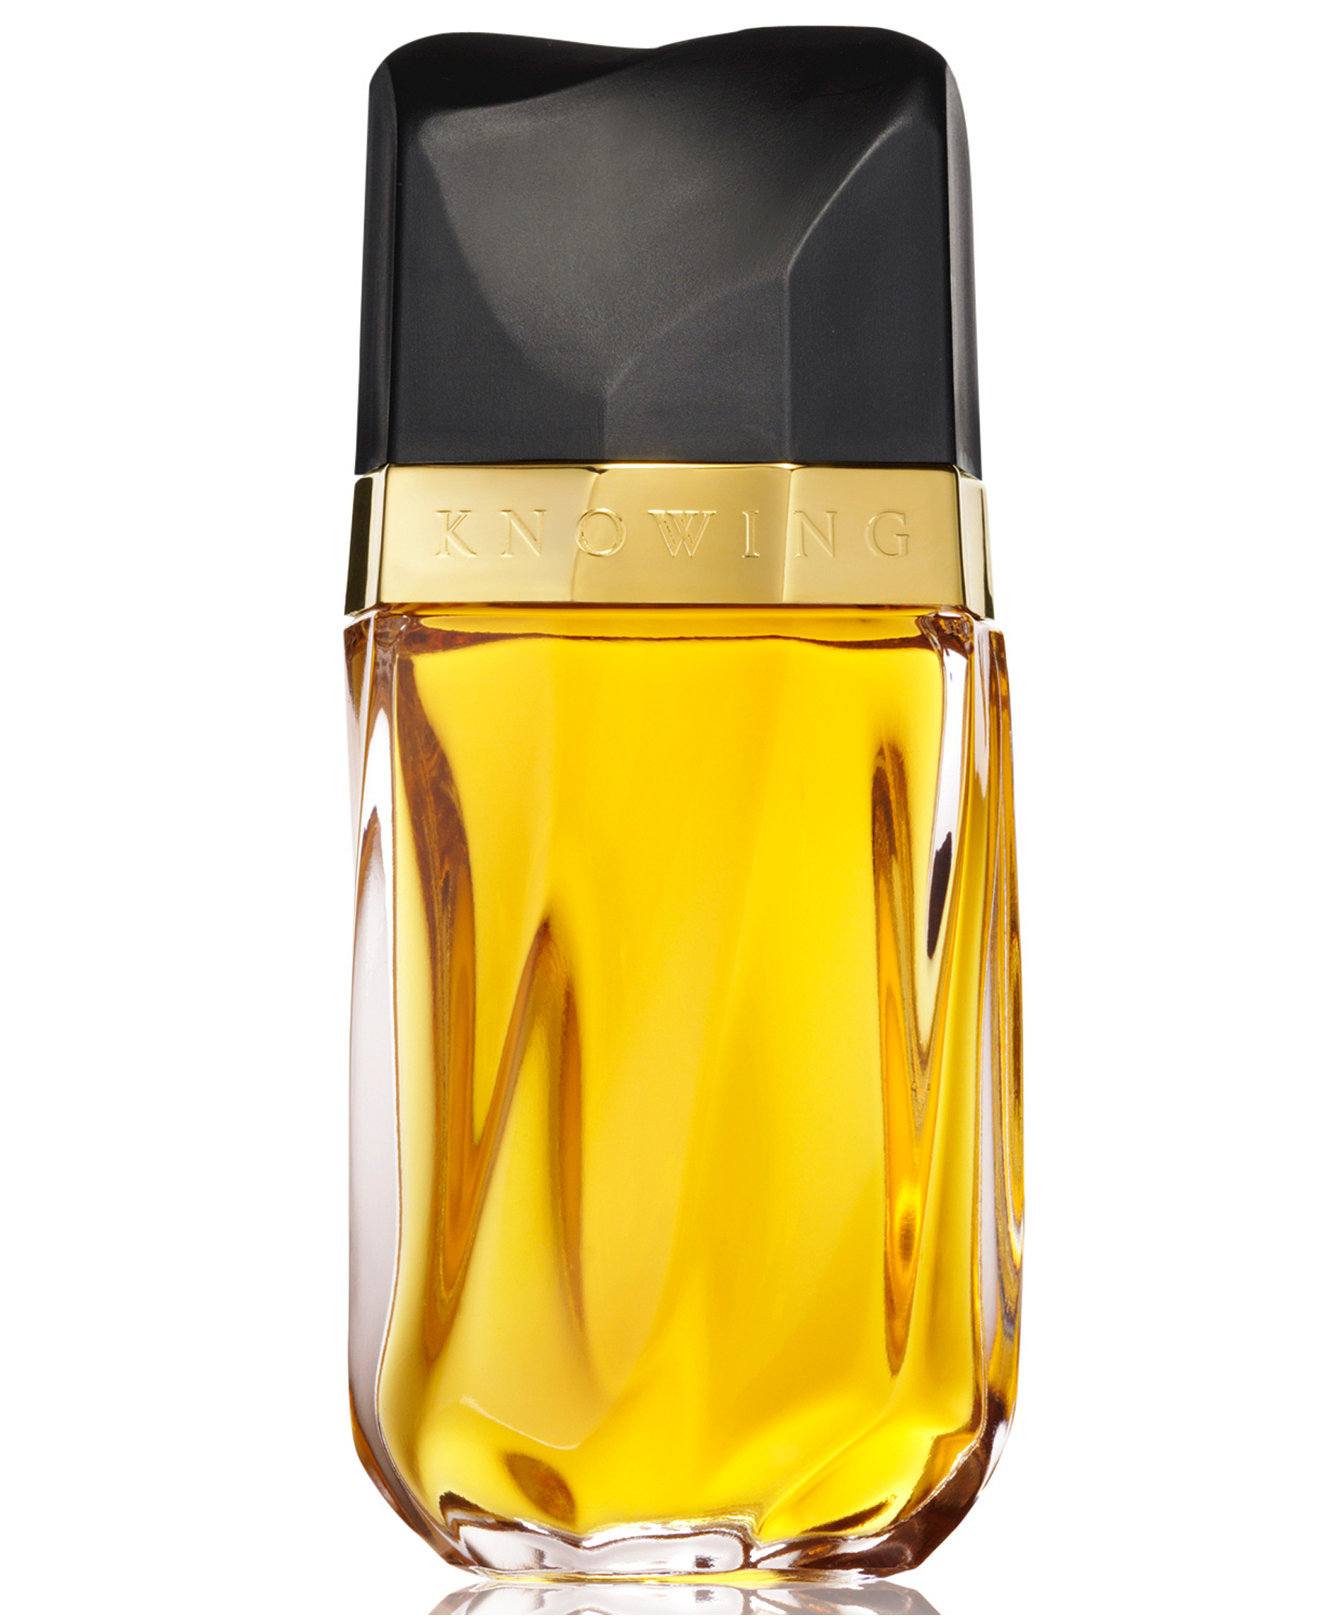 Estée Lauder Knowing W EDP 75ml TESTER